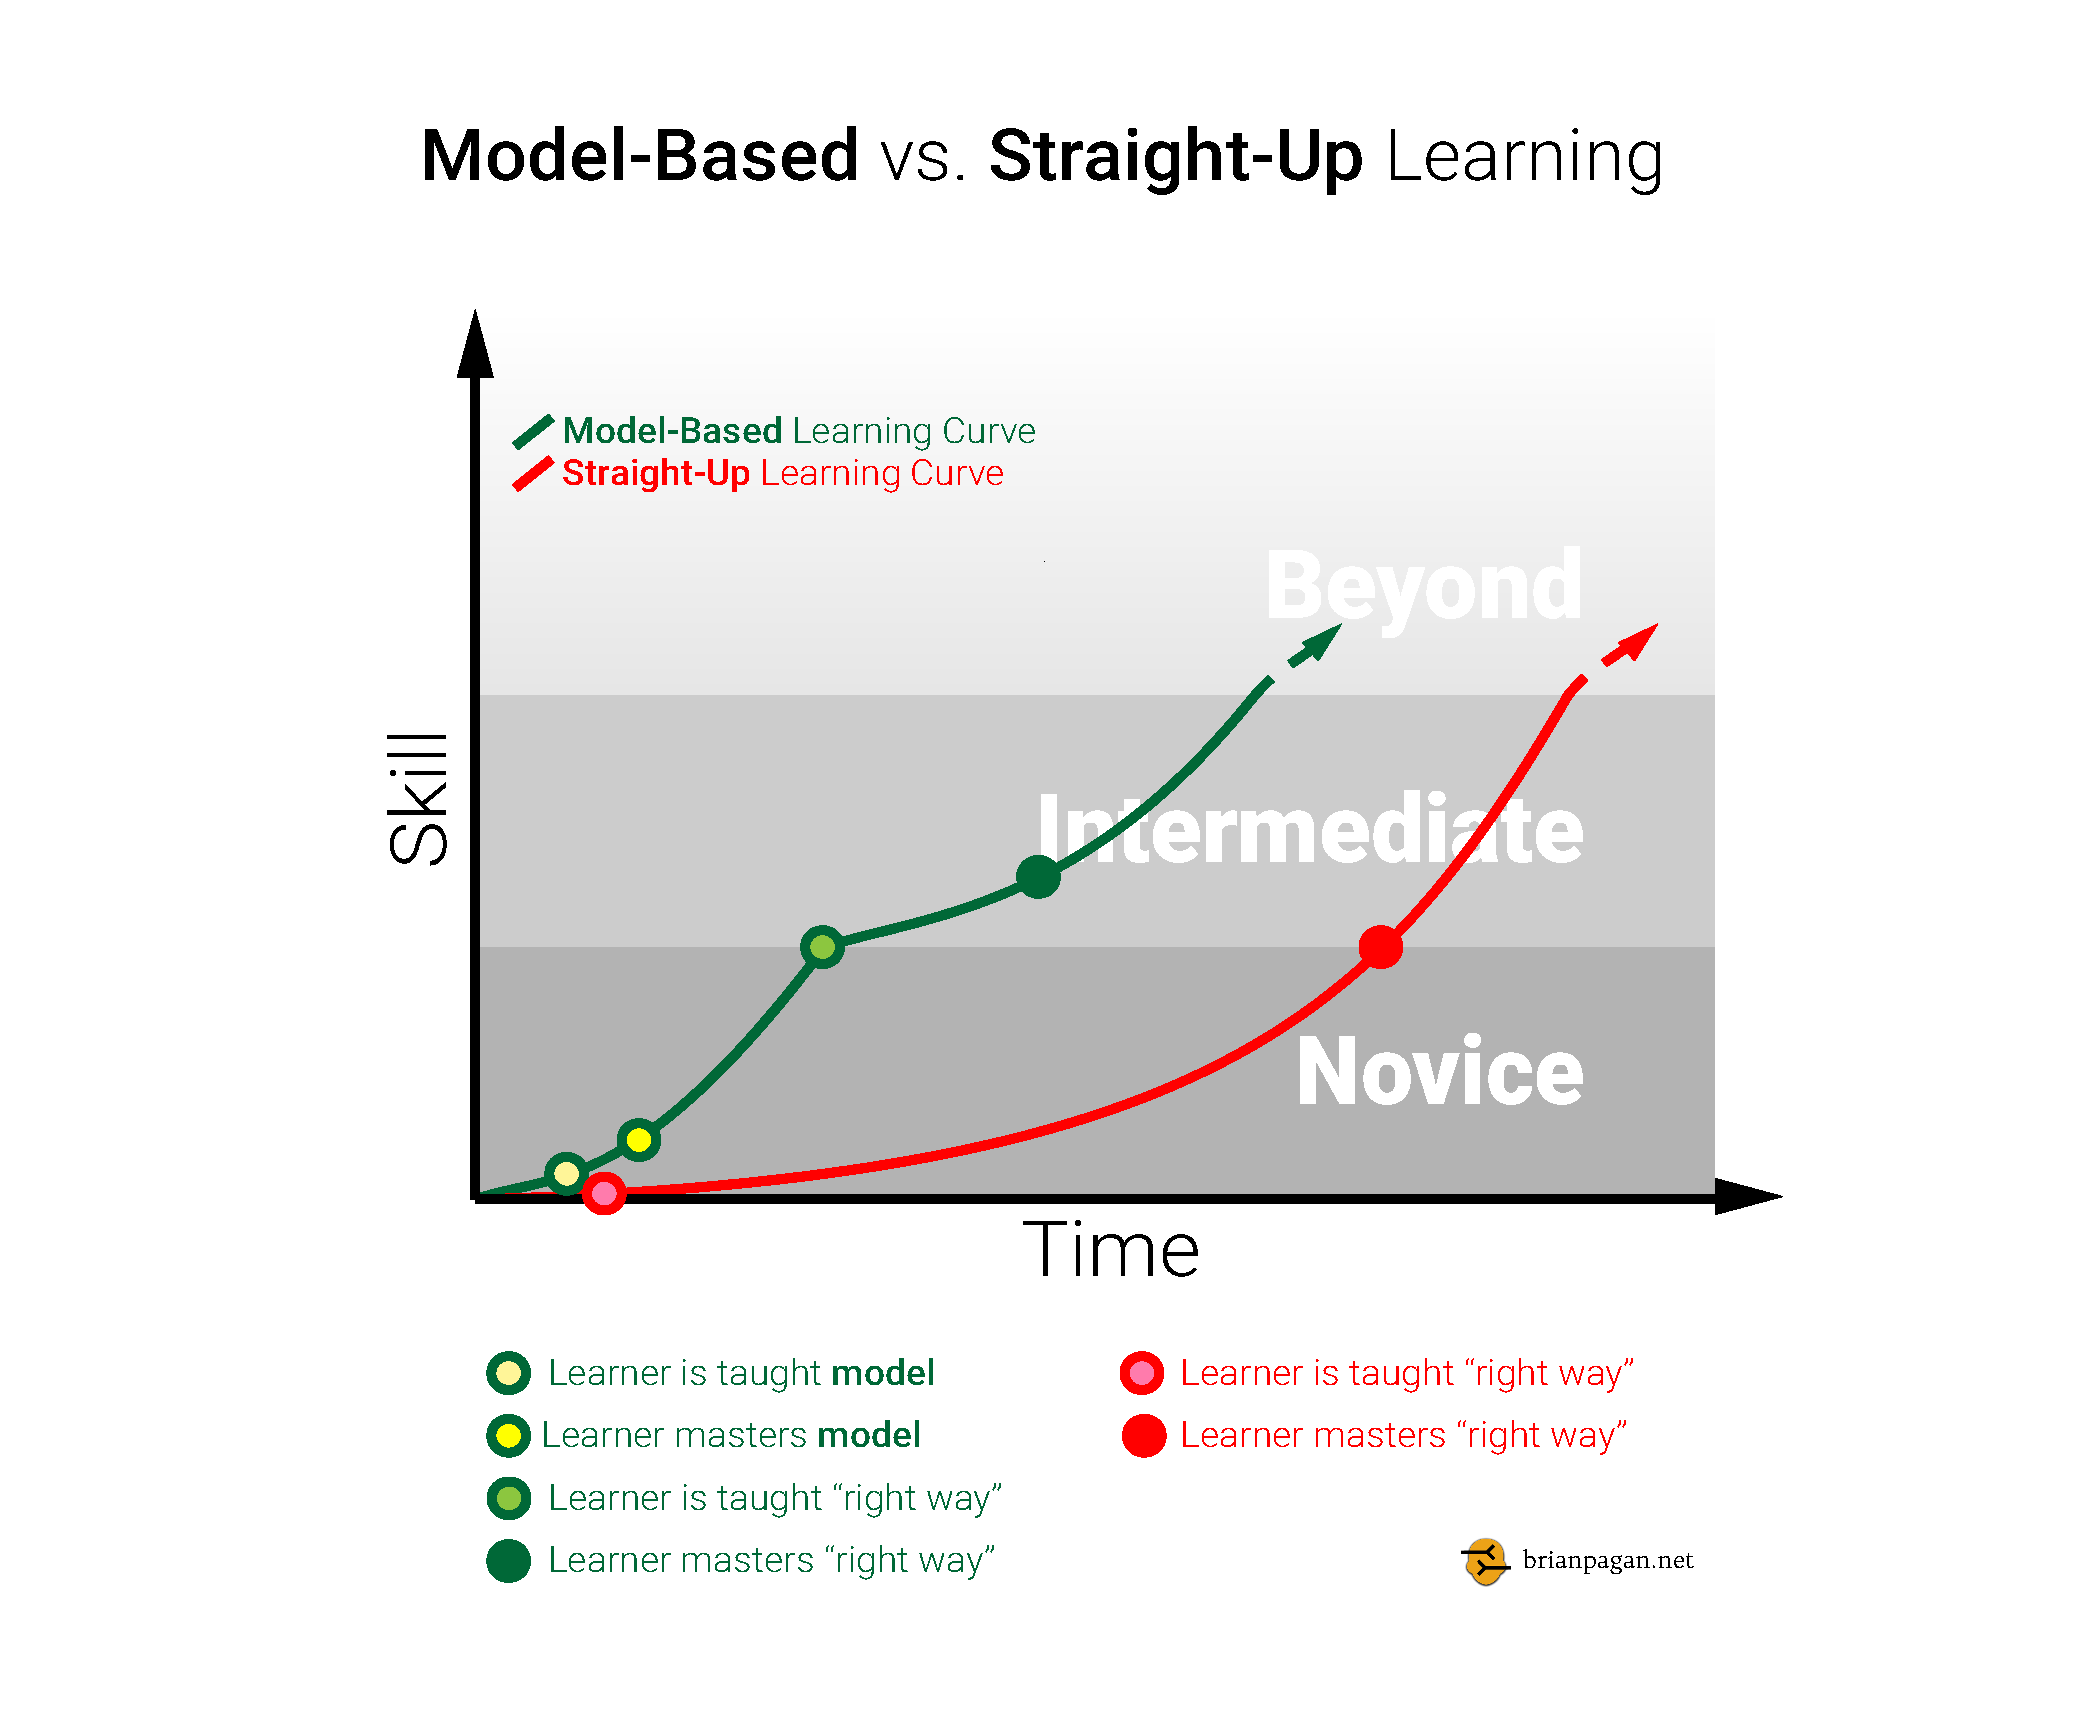 Learning Curve for Model-Based vs. Straight-Up Learning